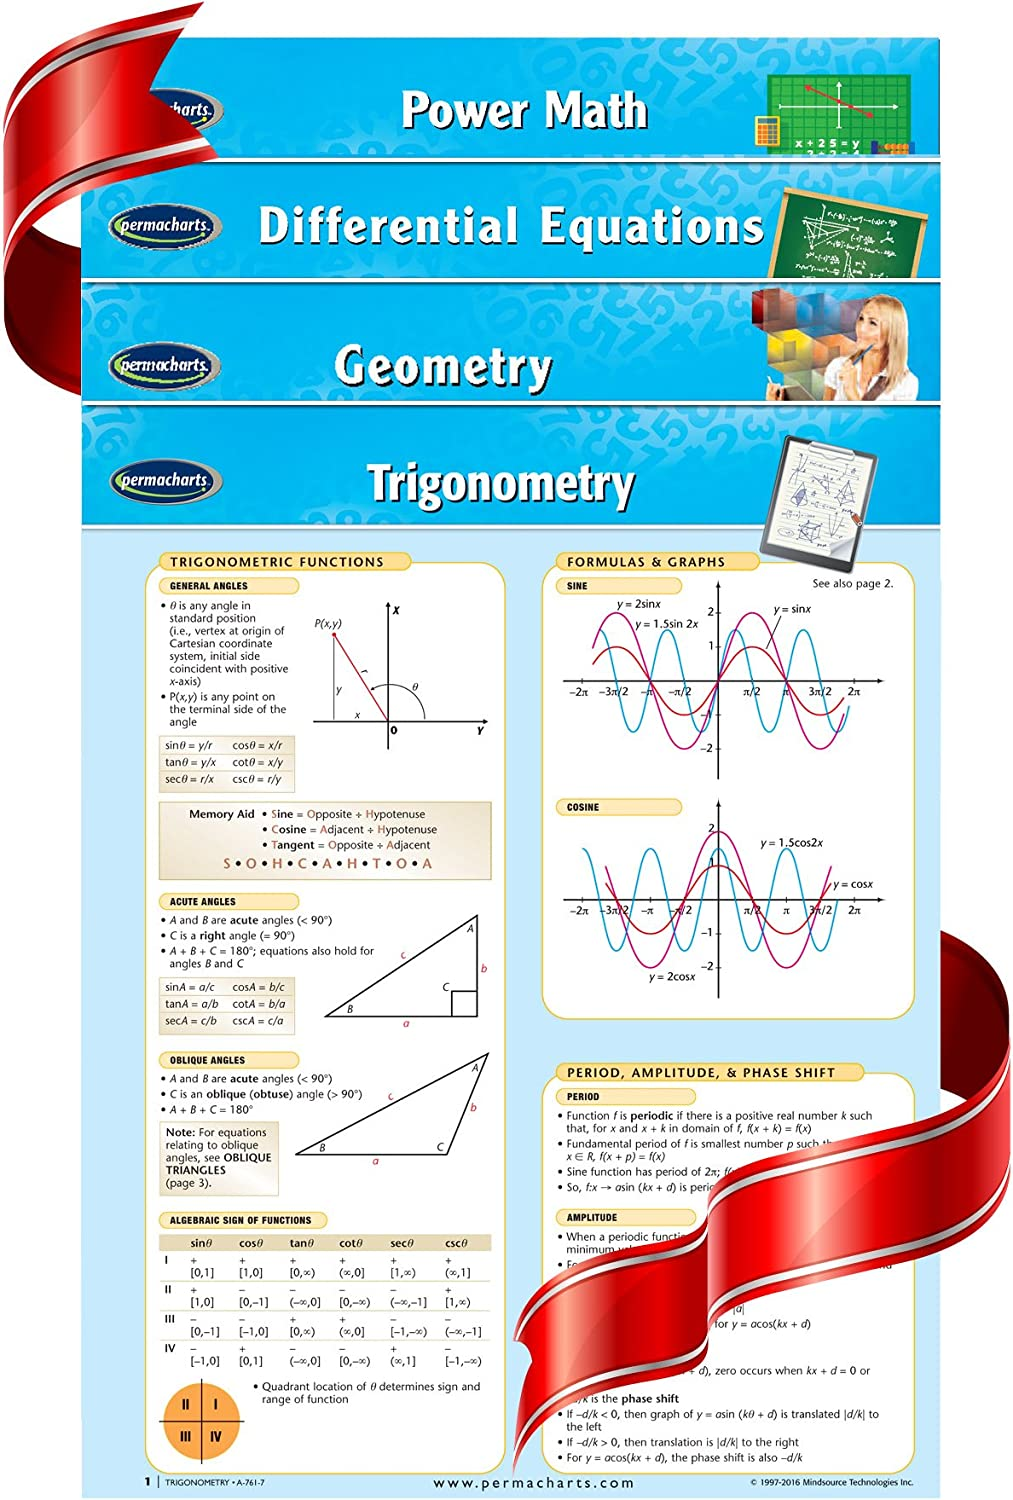 Mathematics - High School Math Quick Reference Guides - 4 Chart Bundle by Permacharts